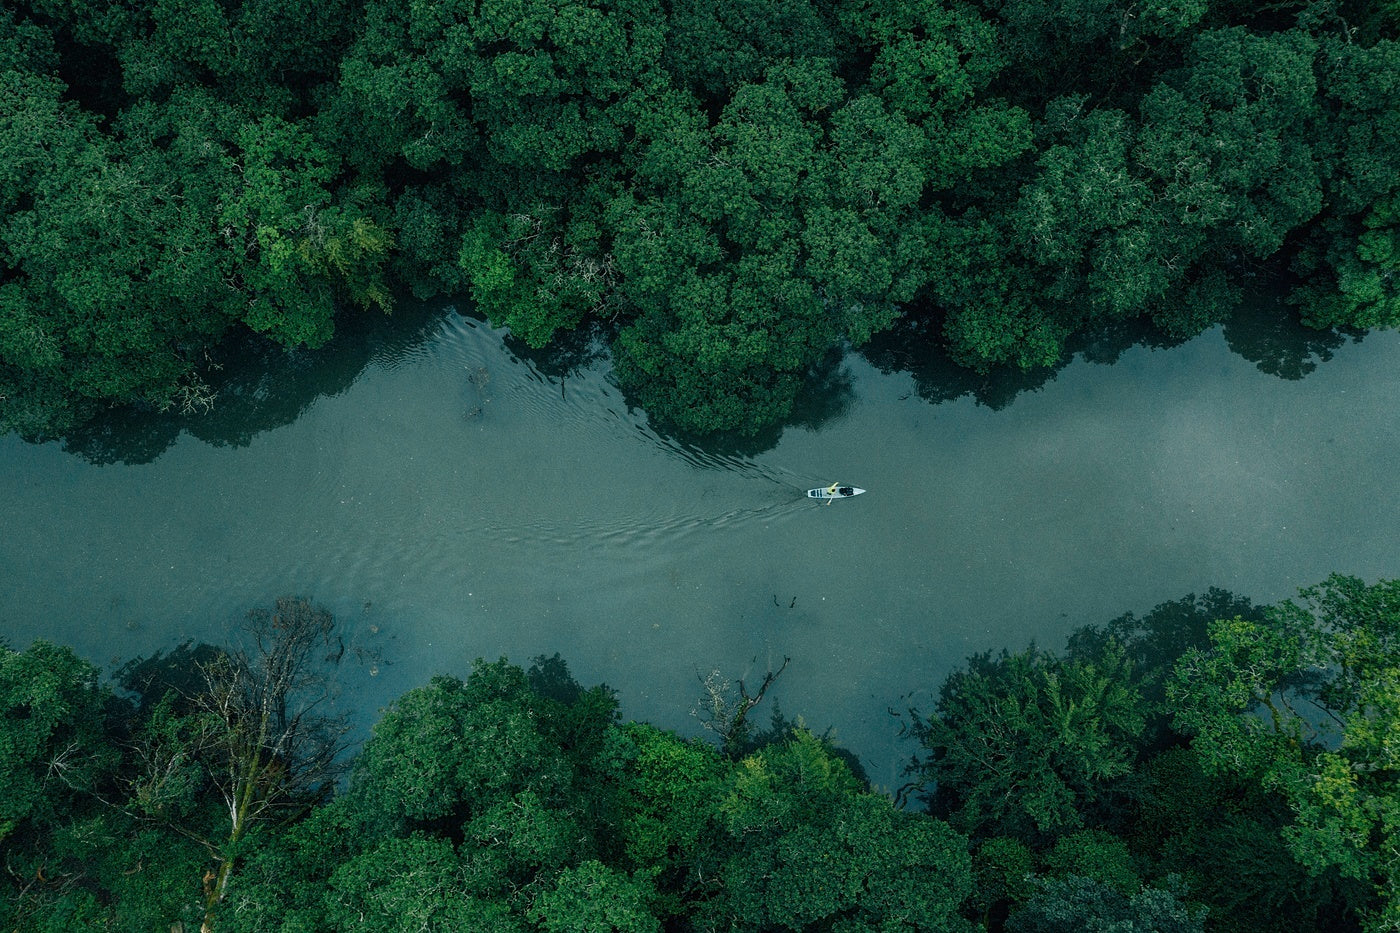 Arial view of Sean White paddleboarding up the river for a solo adventure